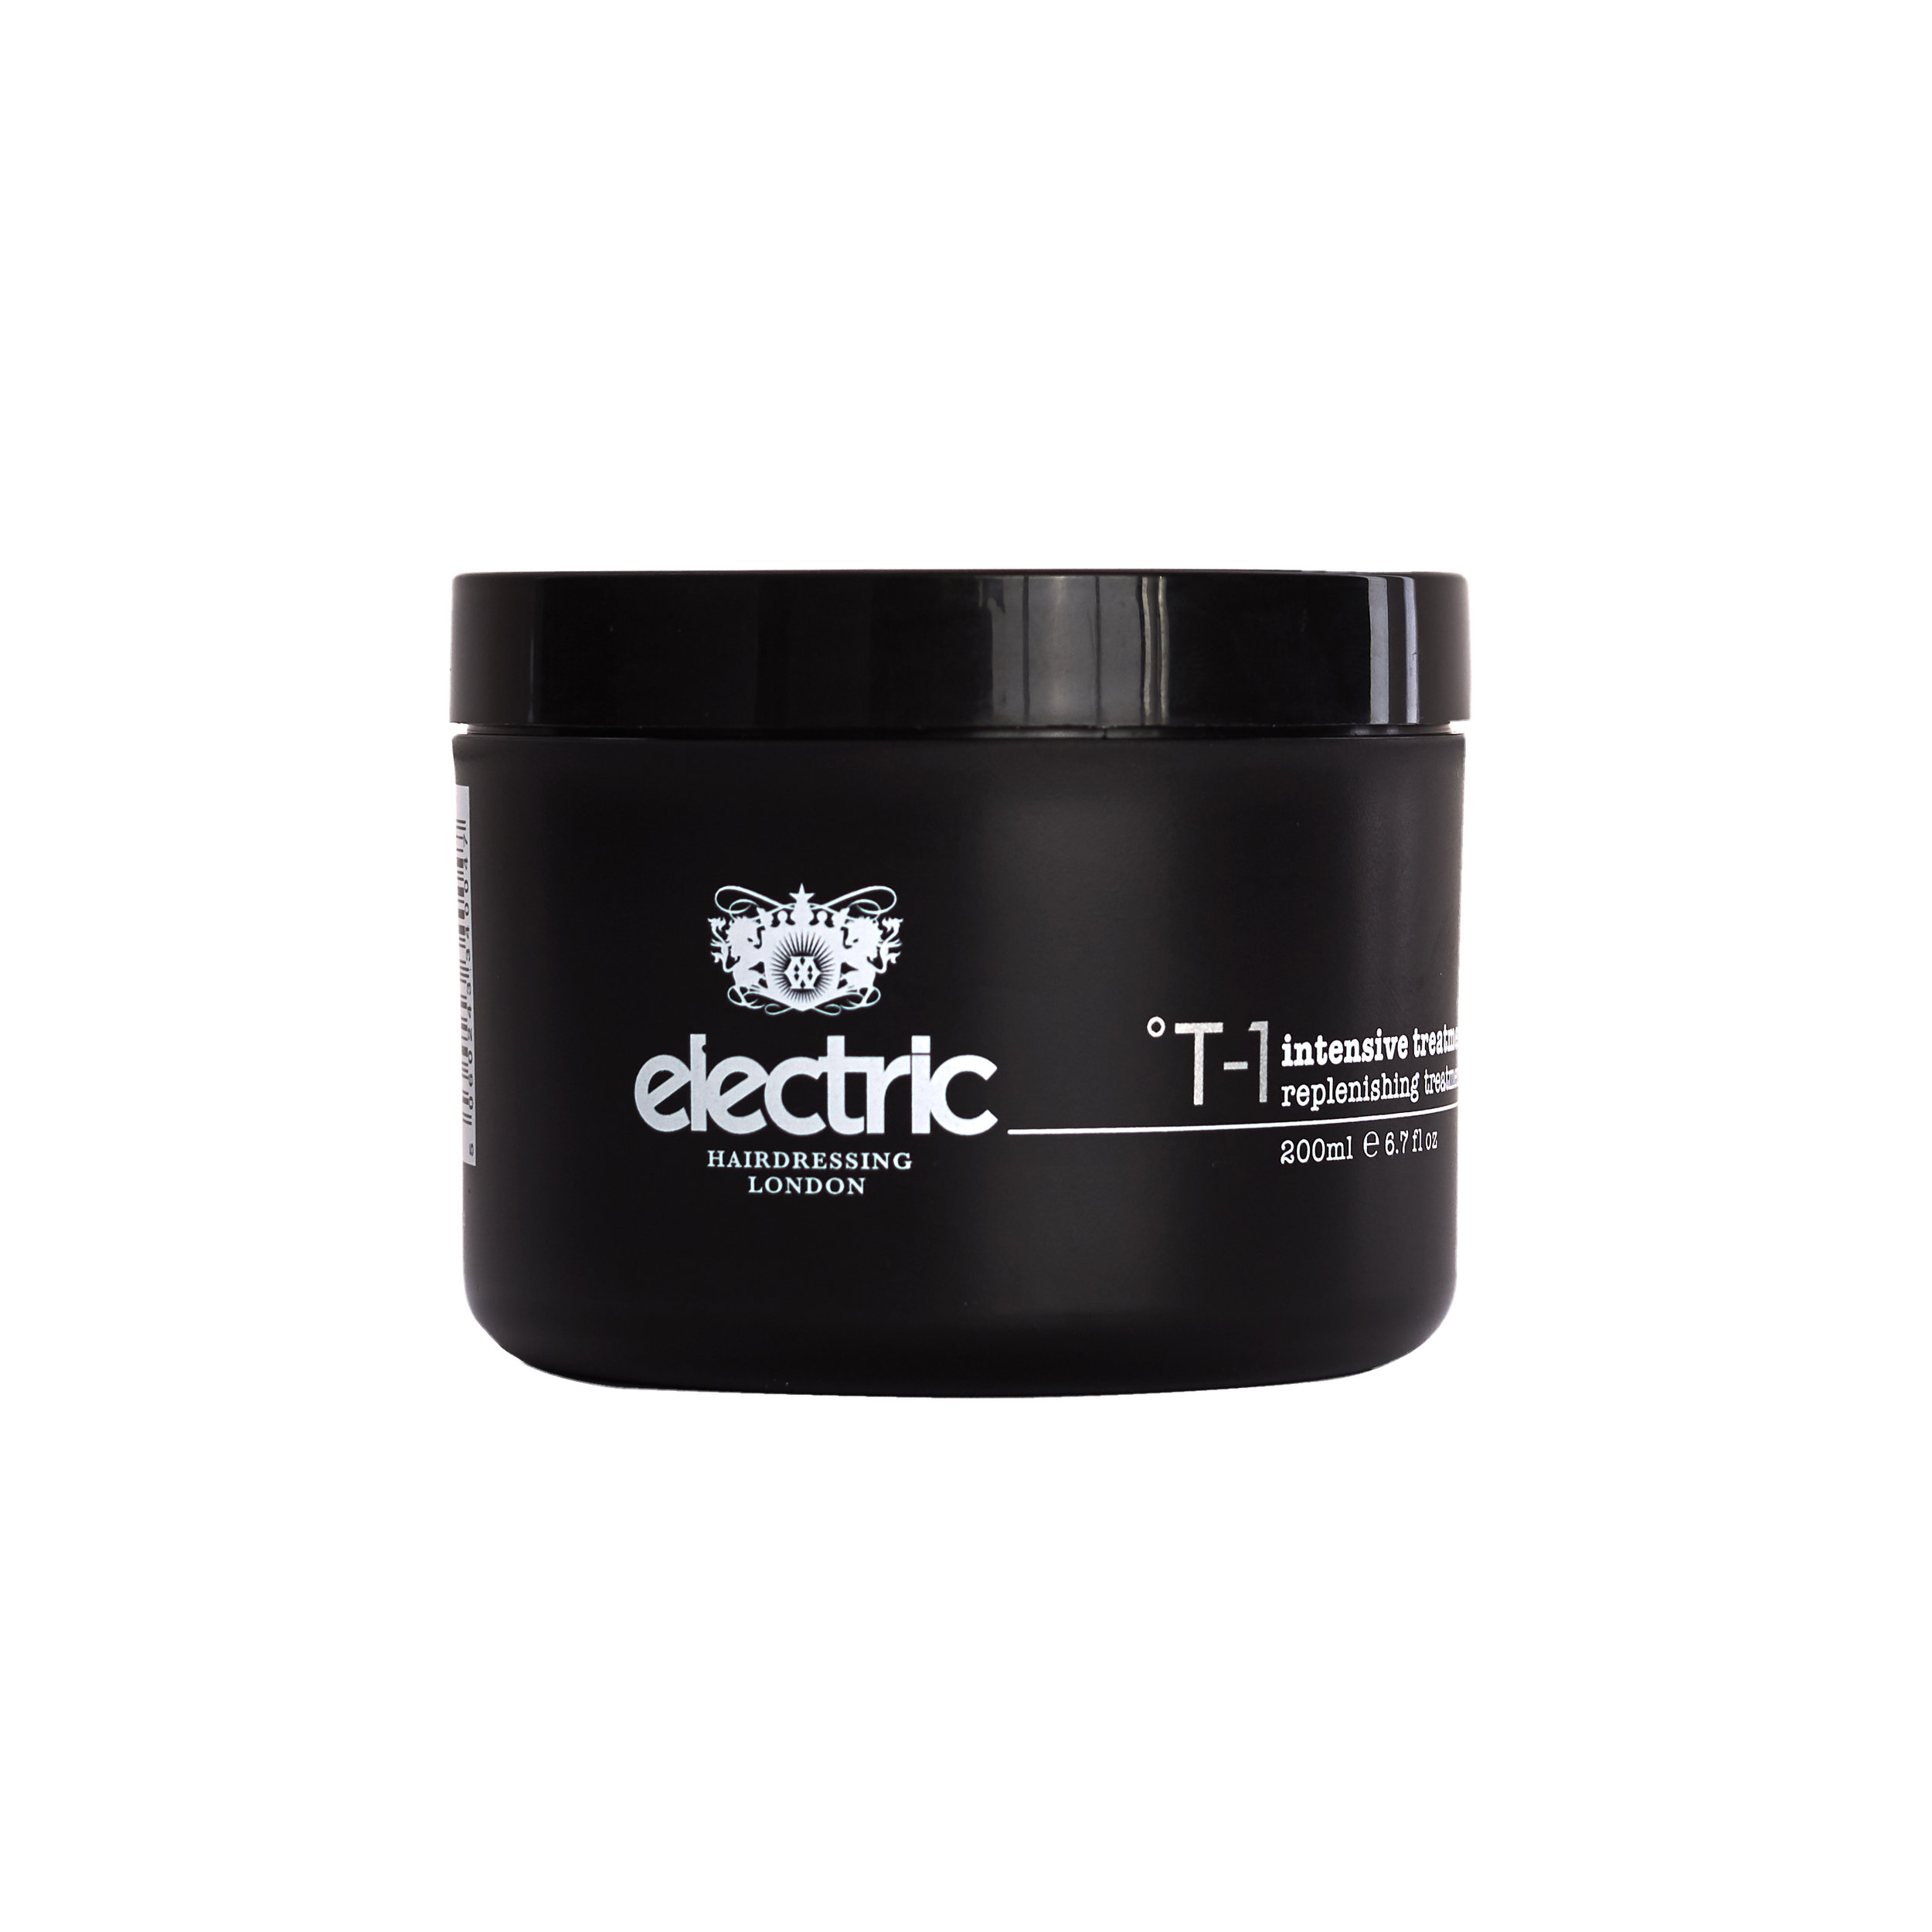 £25.00 - You will get between 5-10 applications of this incredible product depending on your hair length/thickness.